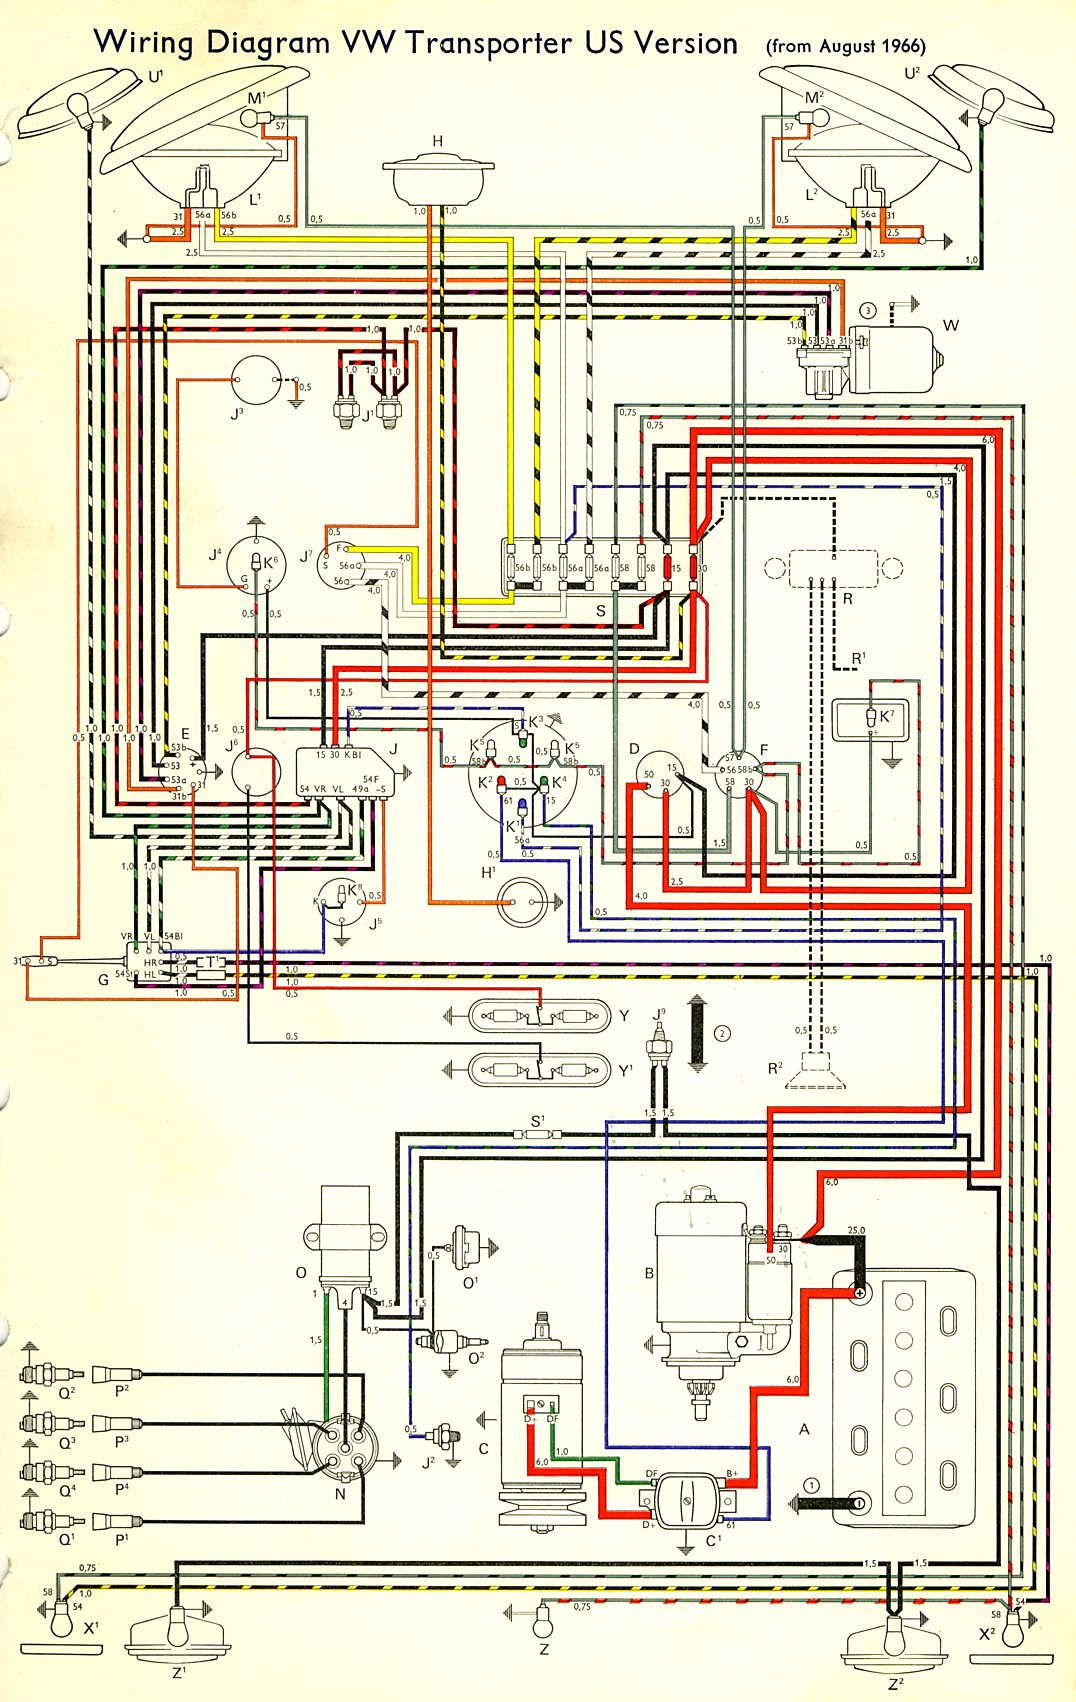 bus_67_USA 67 vw bus wiring harness 71 vw wiring harness \u2022 wiring diagrams Wiring Harness Diagram at sewacar.co